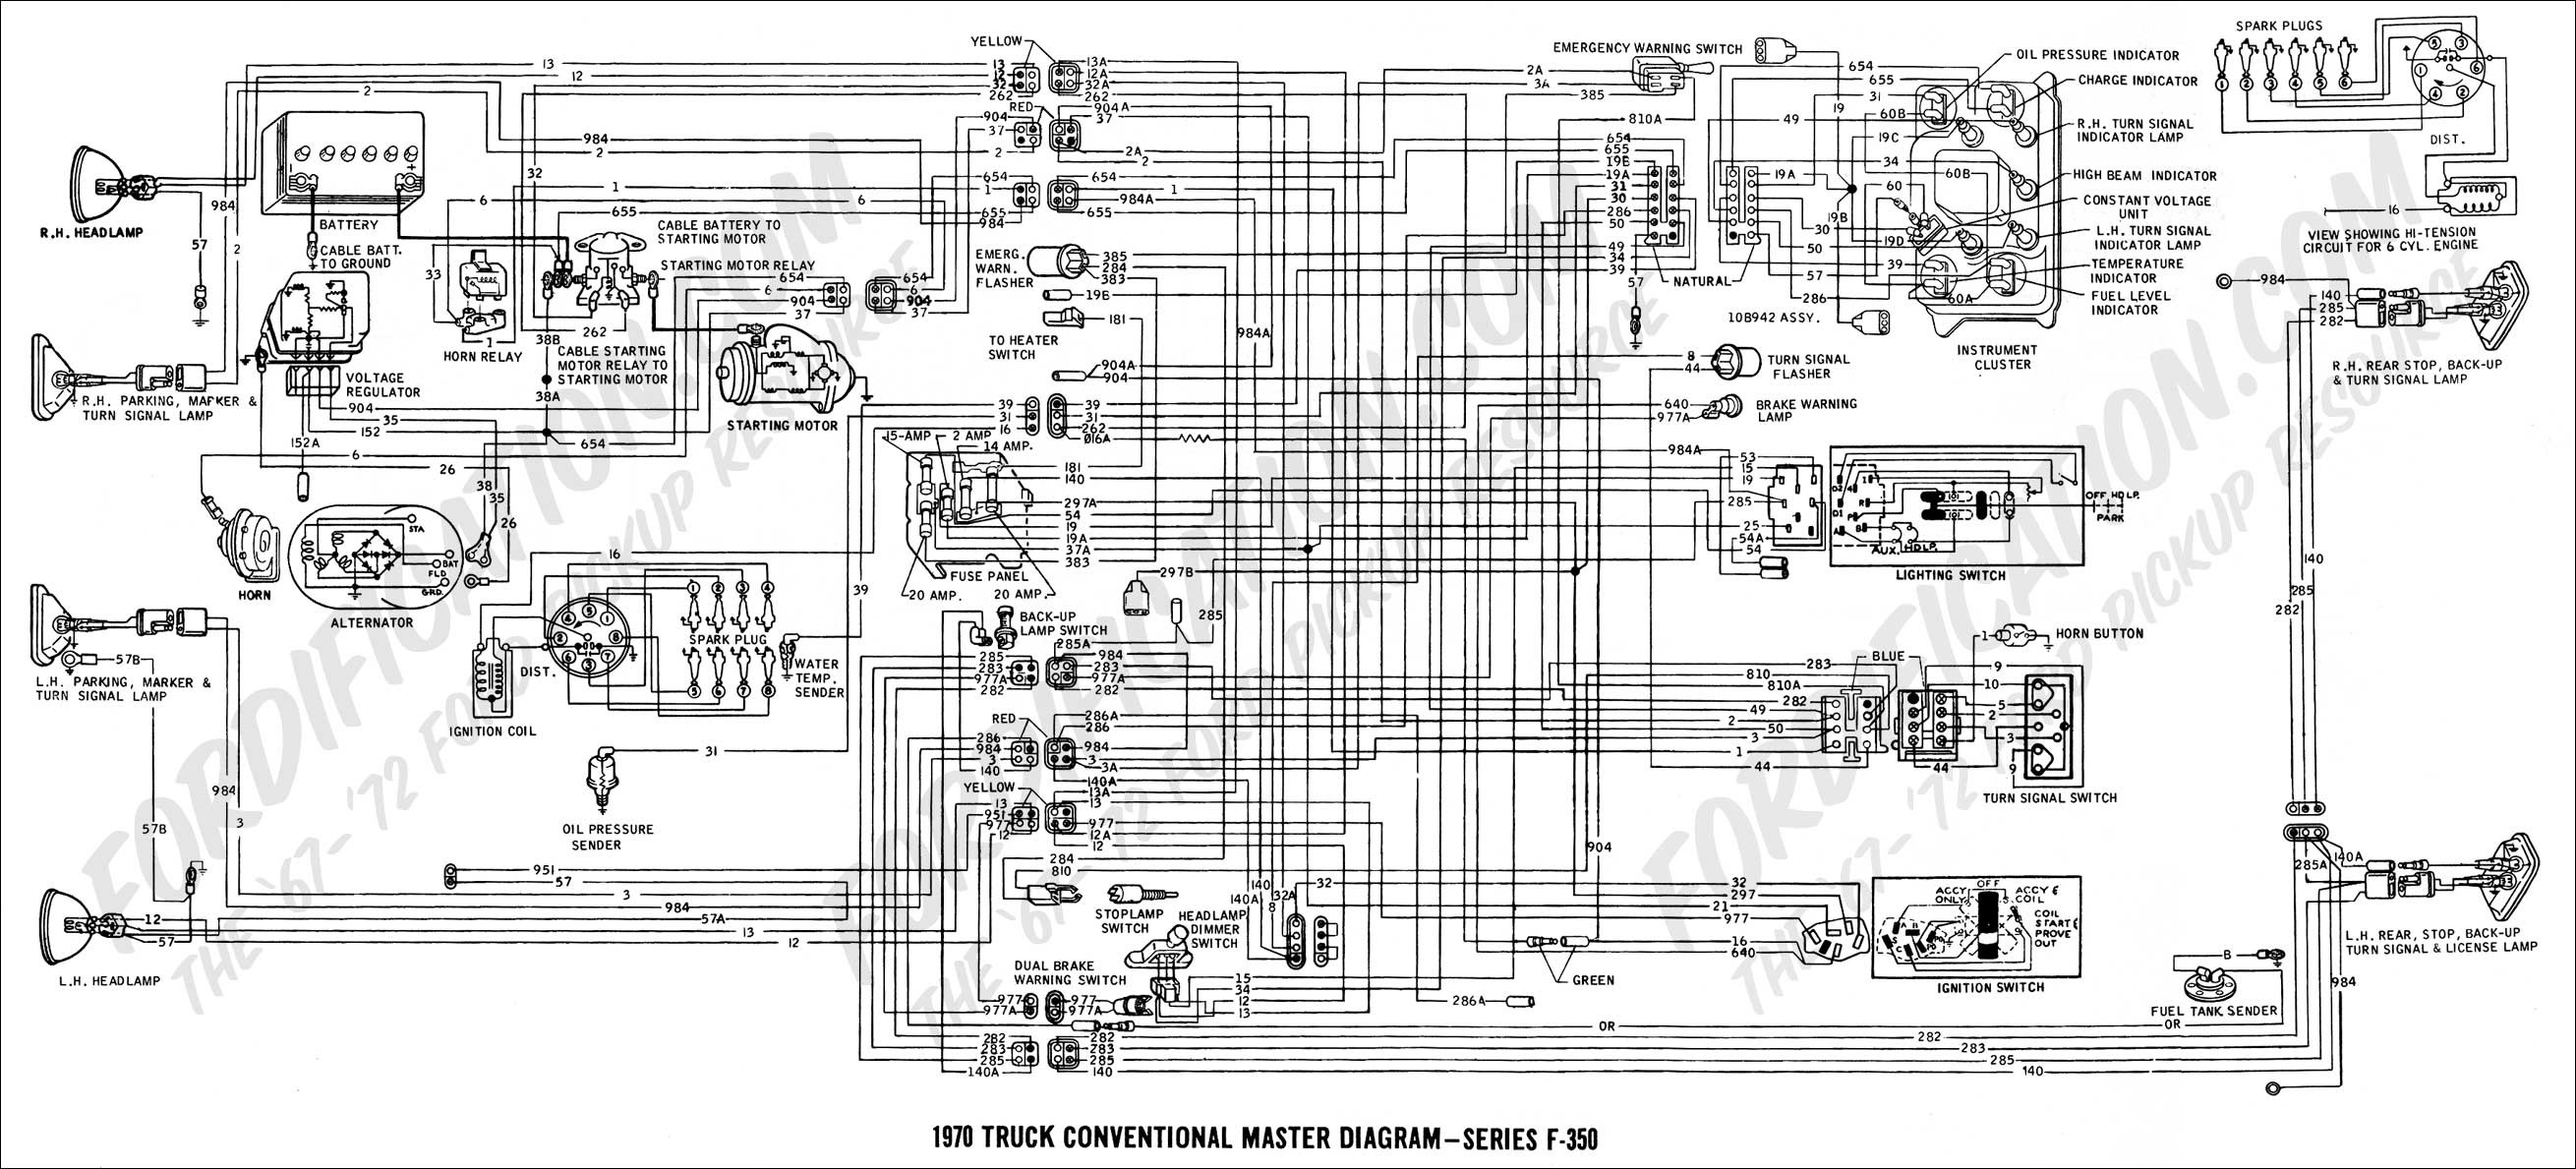 Ford Ka Engine Diagram Ford Truck Technical Drawings And Schematics Section H Wiring Fair Of Ford